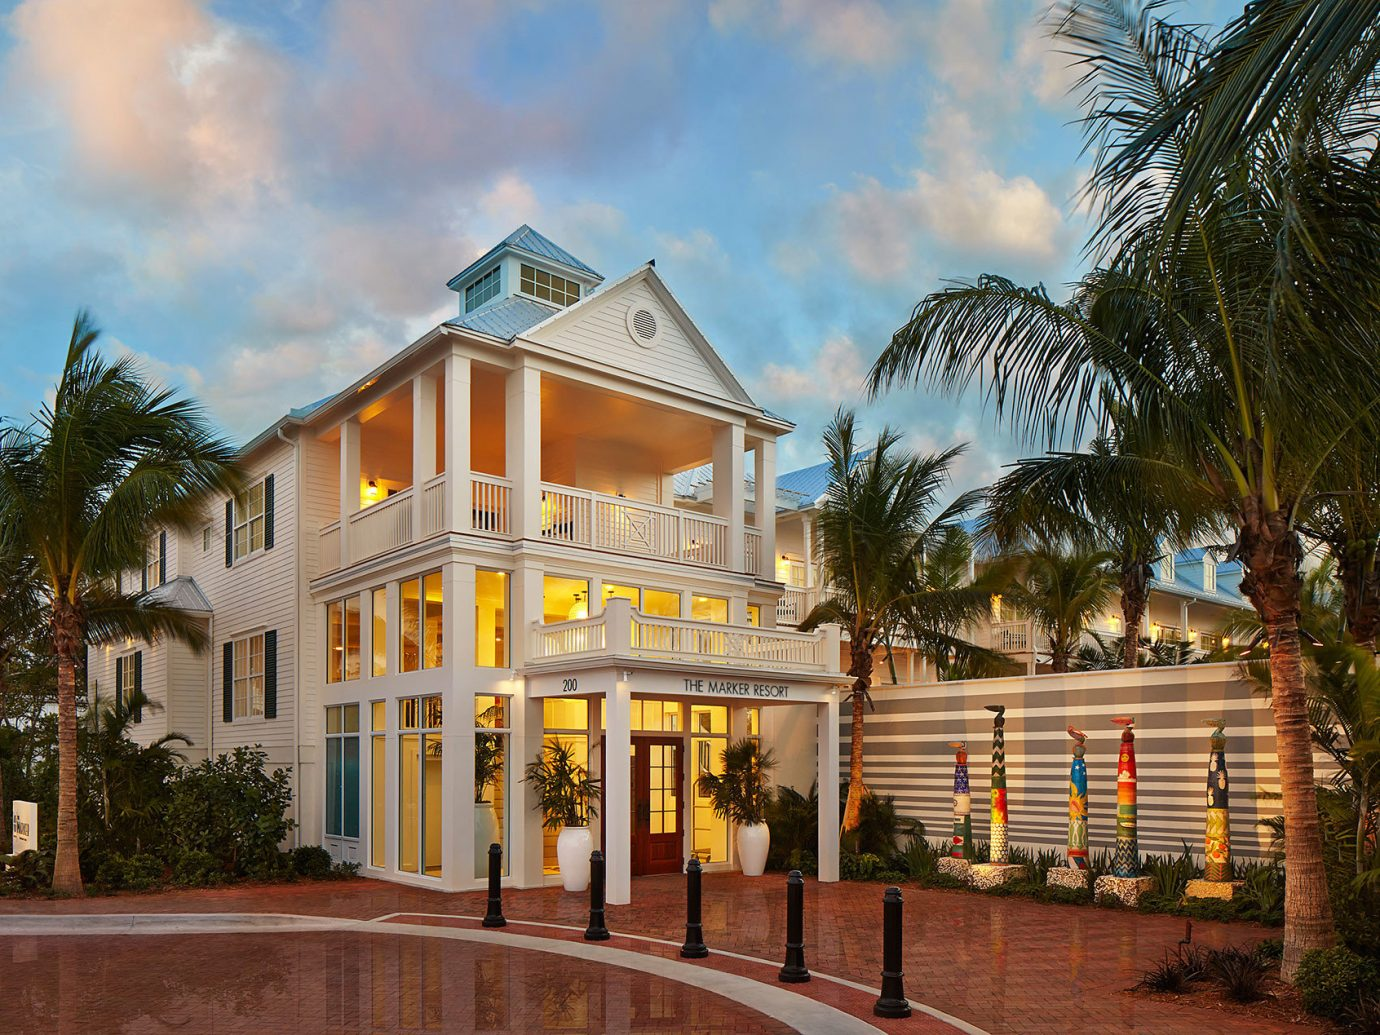 Florida Hotels property home palm tree arecales real estate house sky Resort building estate residential area hotel mansion condominium Villa mixed use tree facade apartment elevation cottage plant